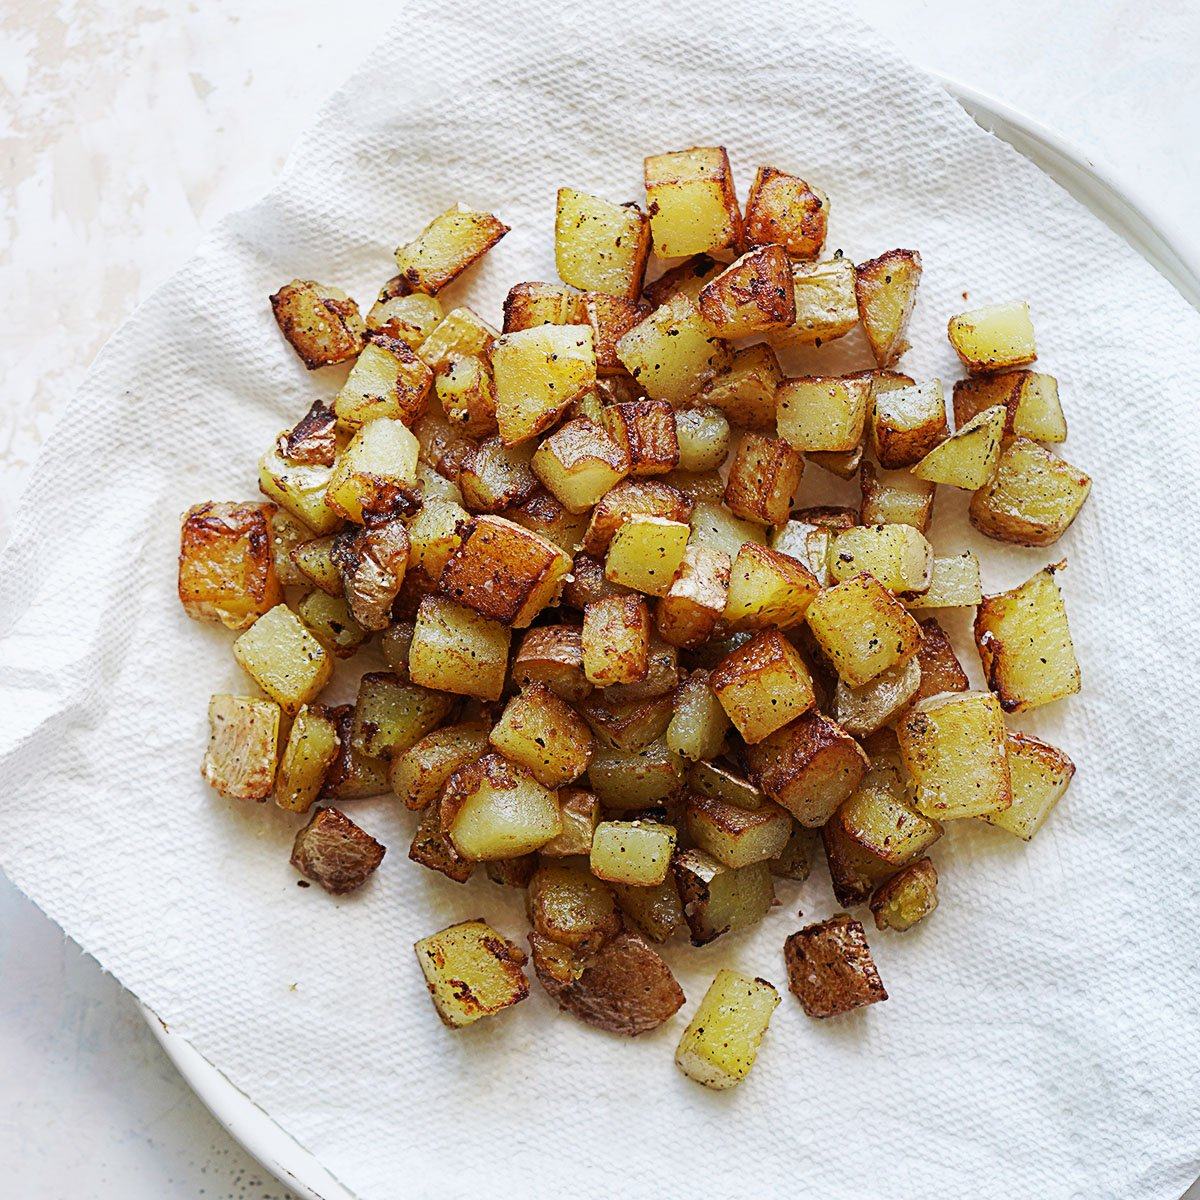 Fried cubed potatoes on a white plate on top of a paper towel